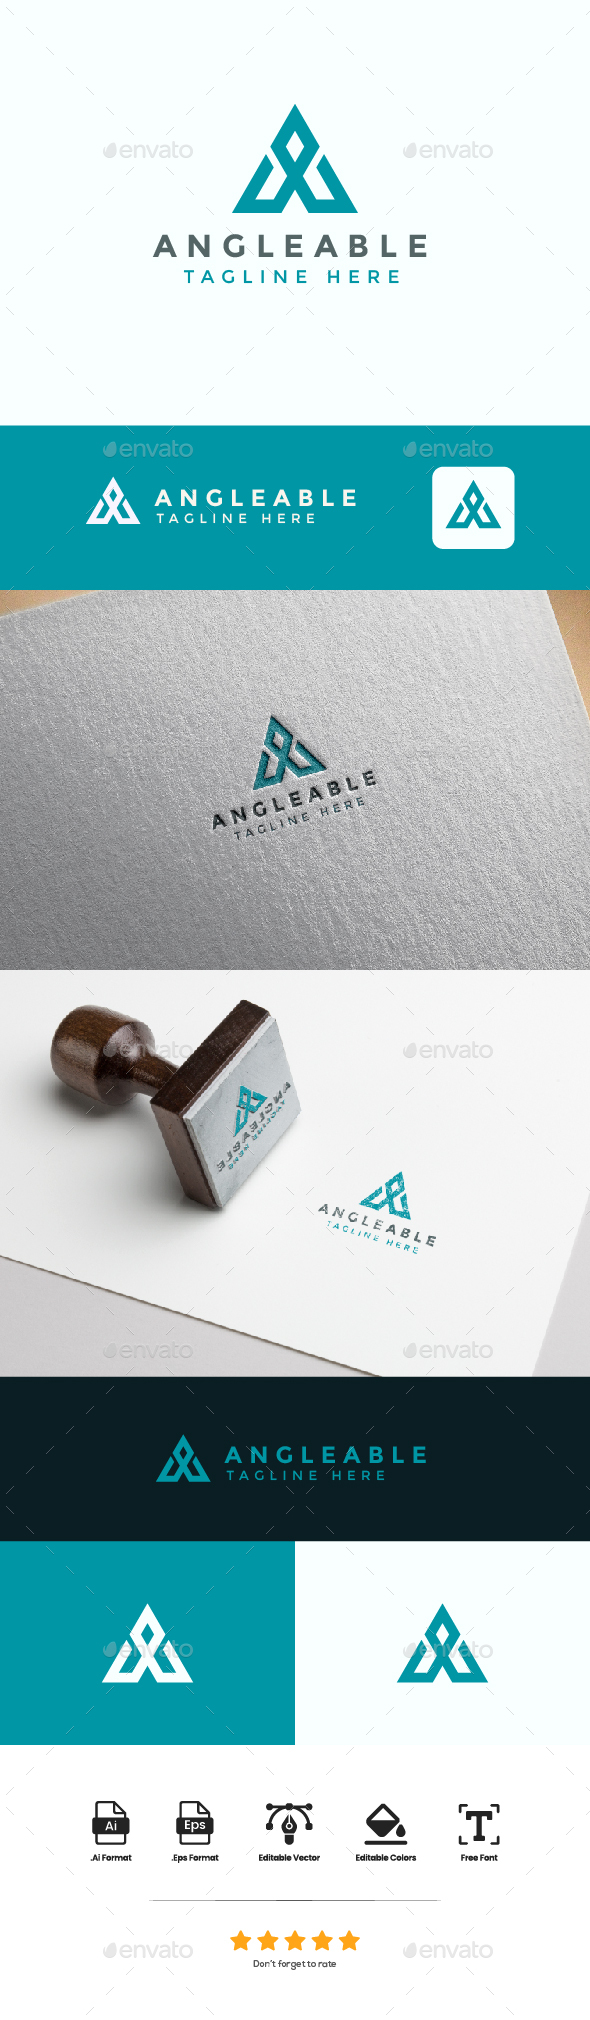 Logo Letter A - Angleable